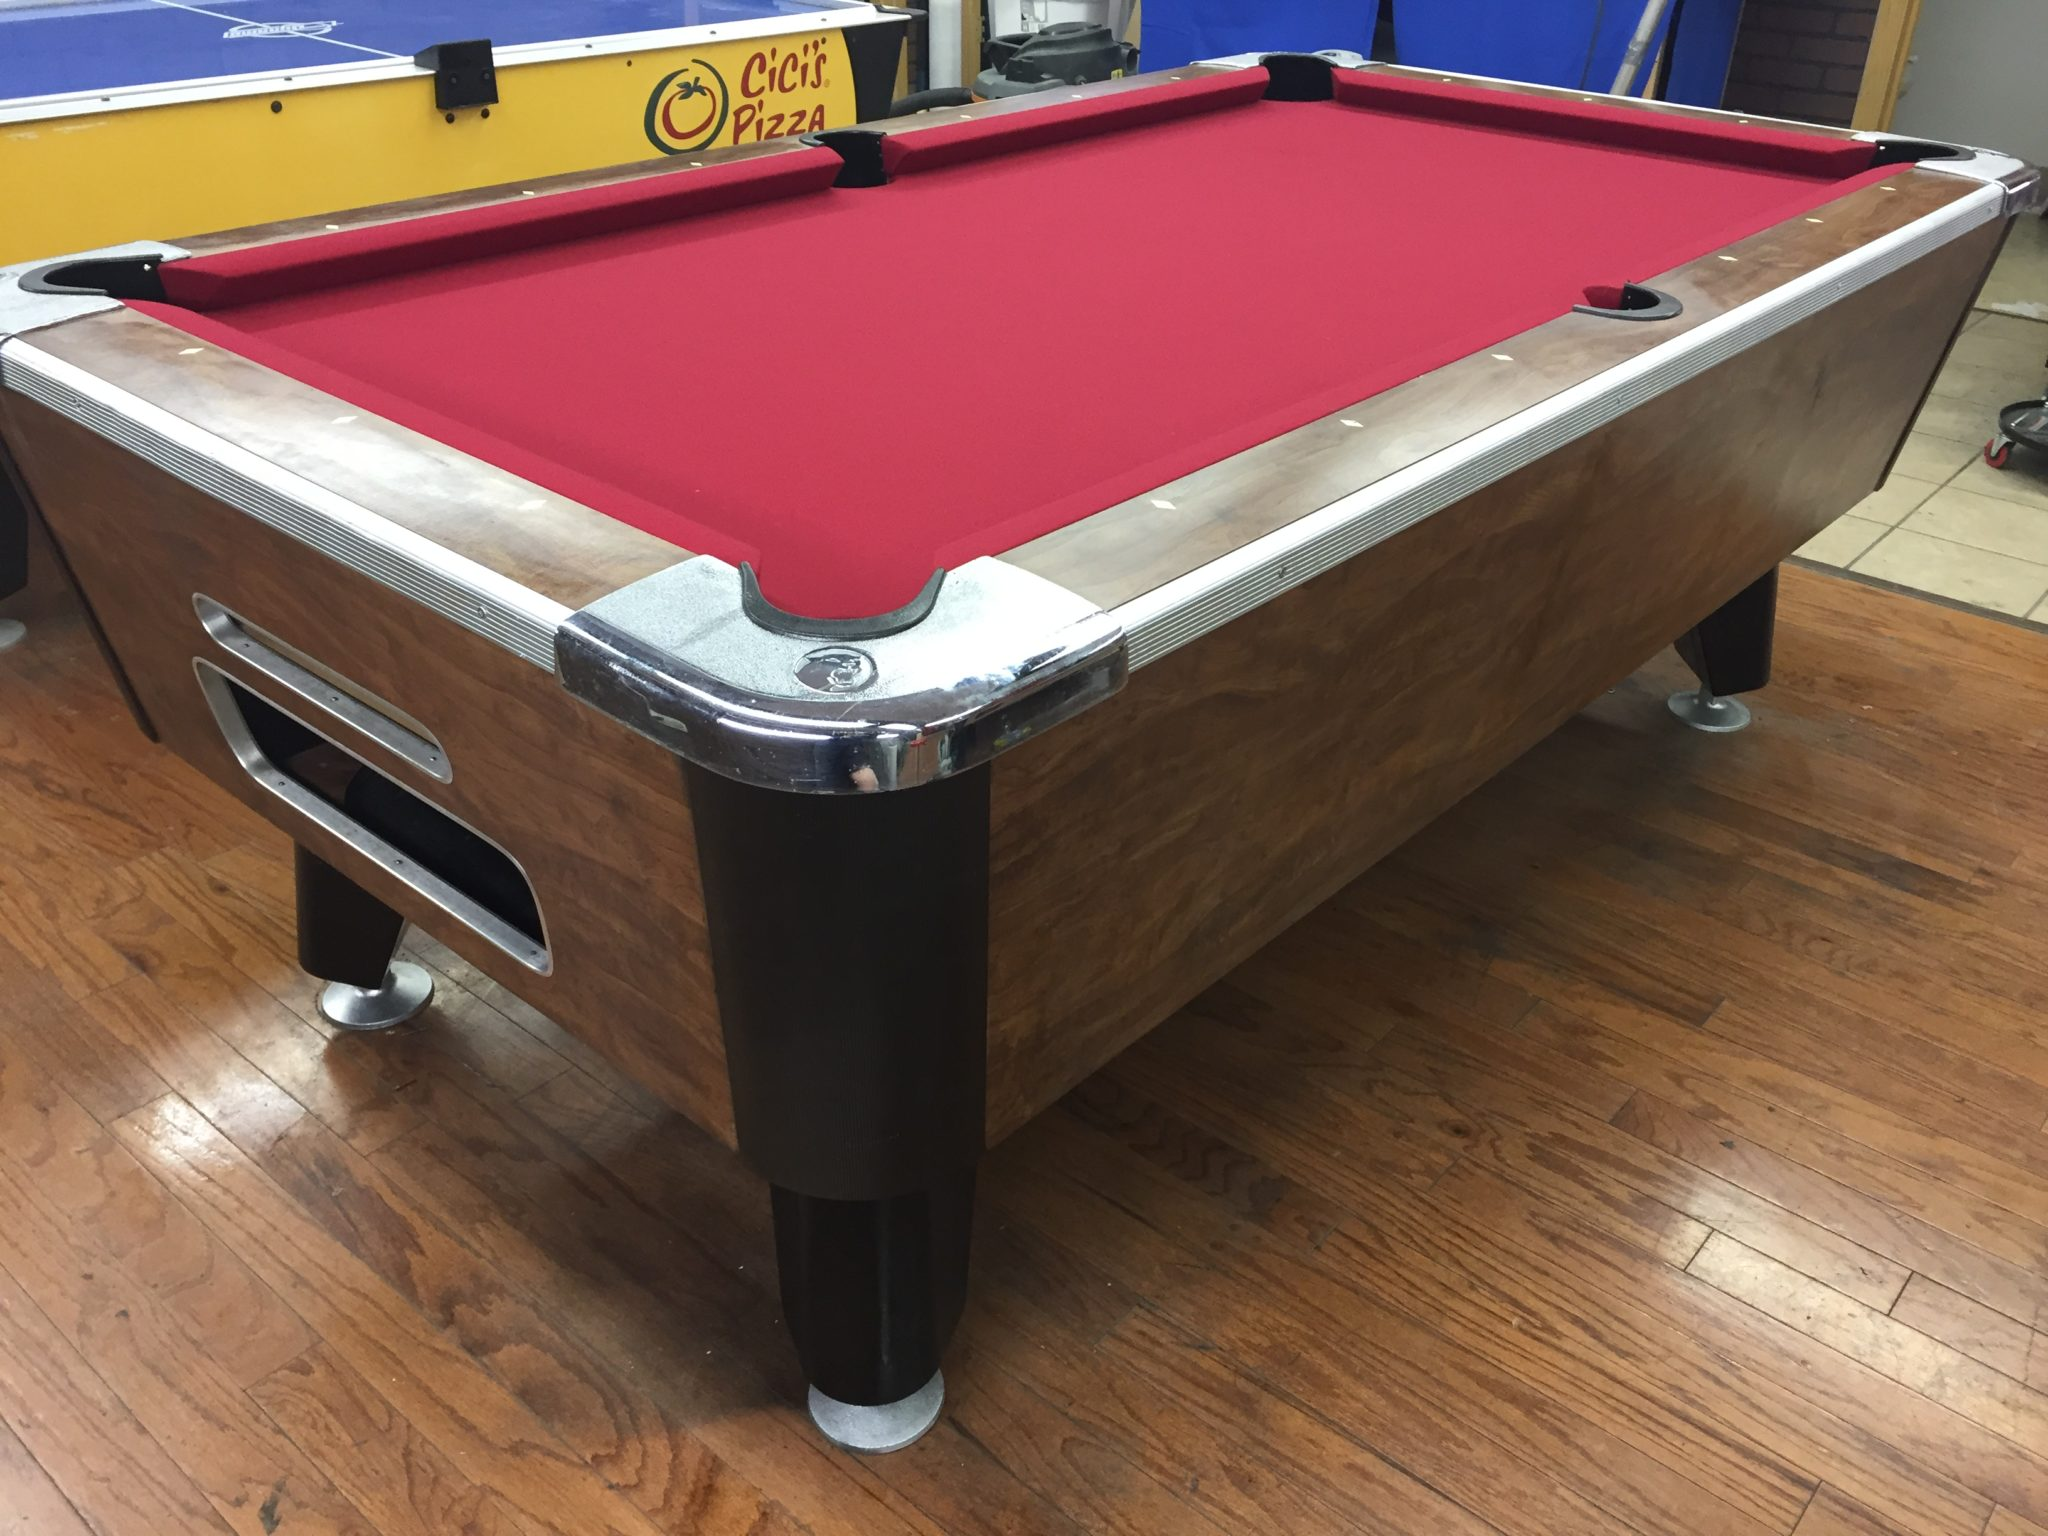 Stupendous Coin Operated Bar Pool Tables Pdf Unitypoint Walk In West Home Interior And Landscaping Ologienasavecom